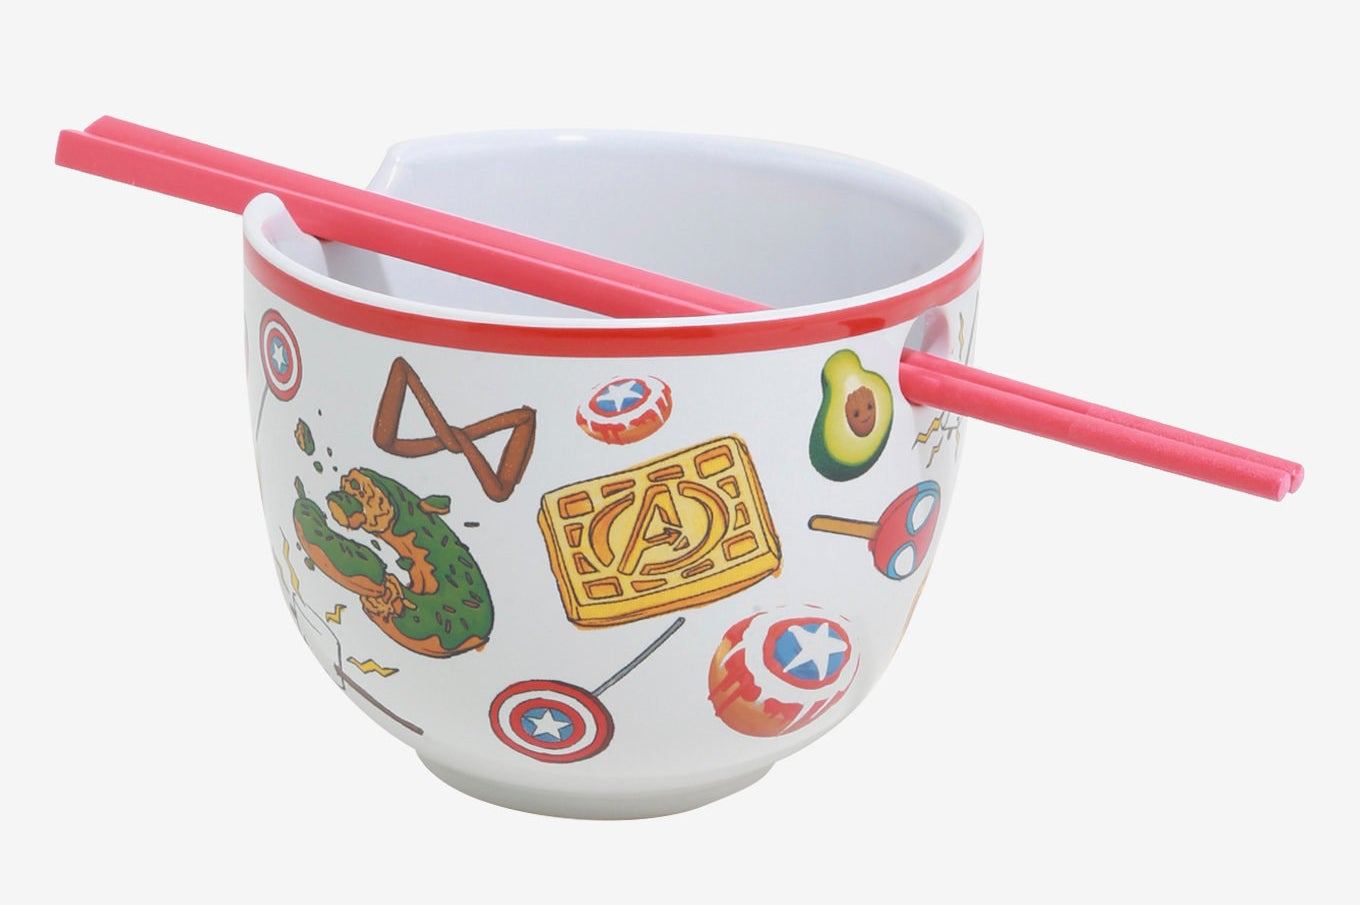 a bowl with Marvel characters on it with a set of chopsticks going through a hole in the top of the bowl